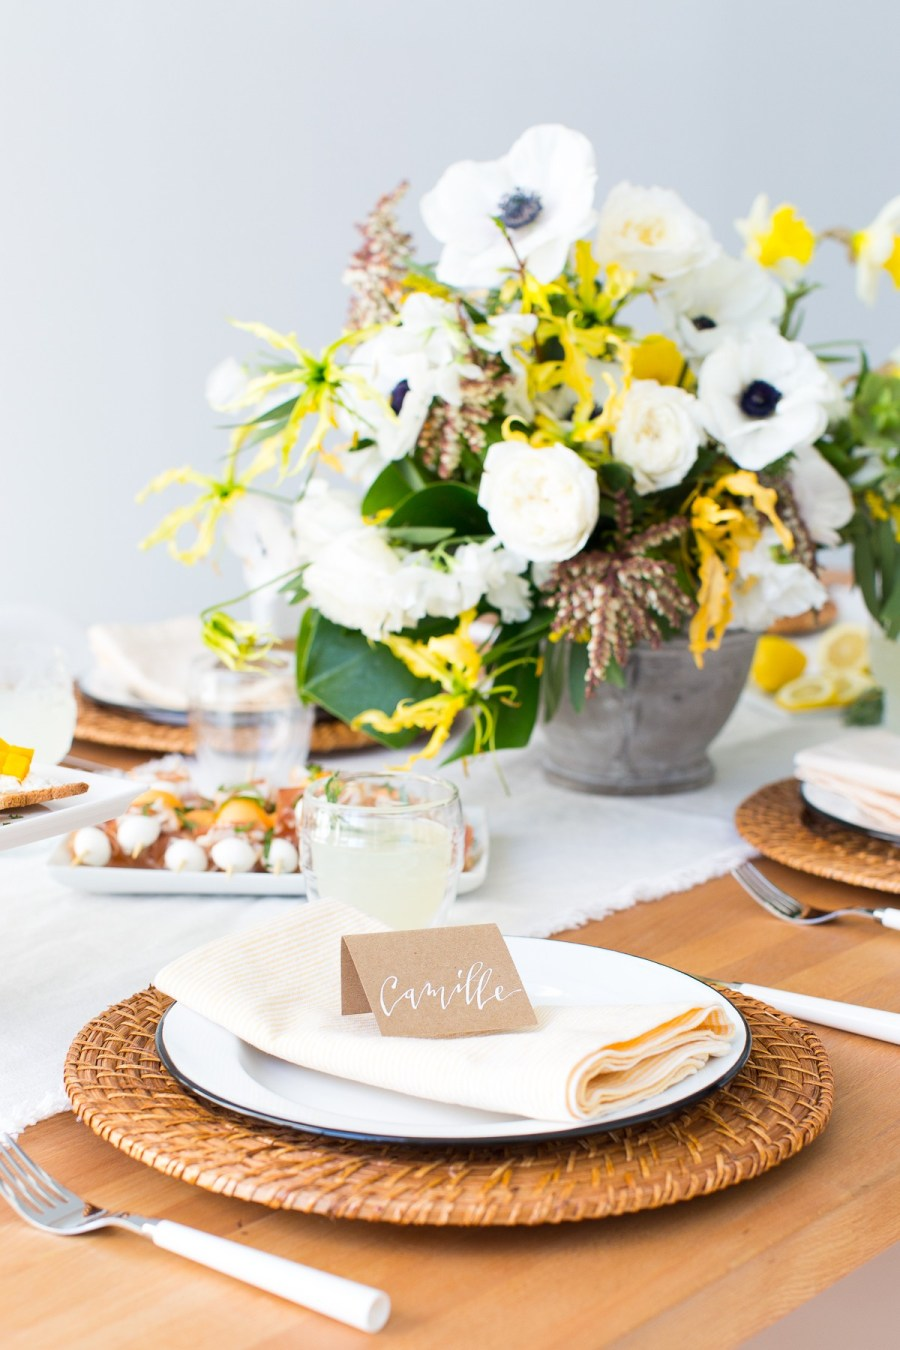 Impress your guests before they even start their meal. Bookmark these ideas for your next dinner party!